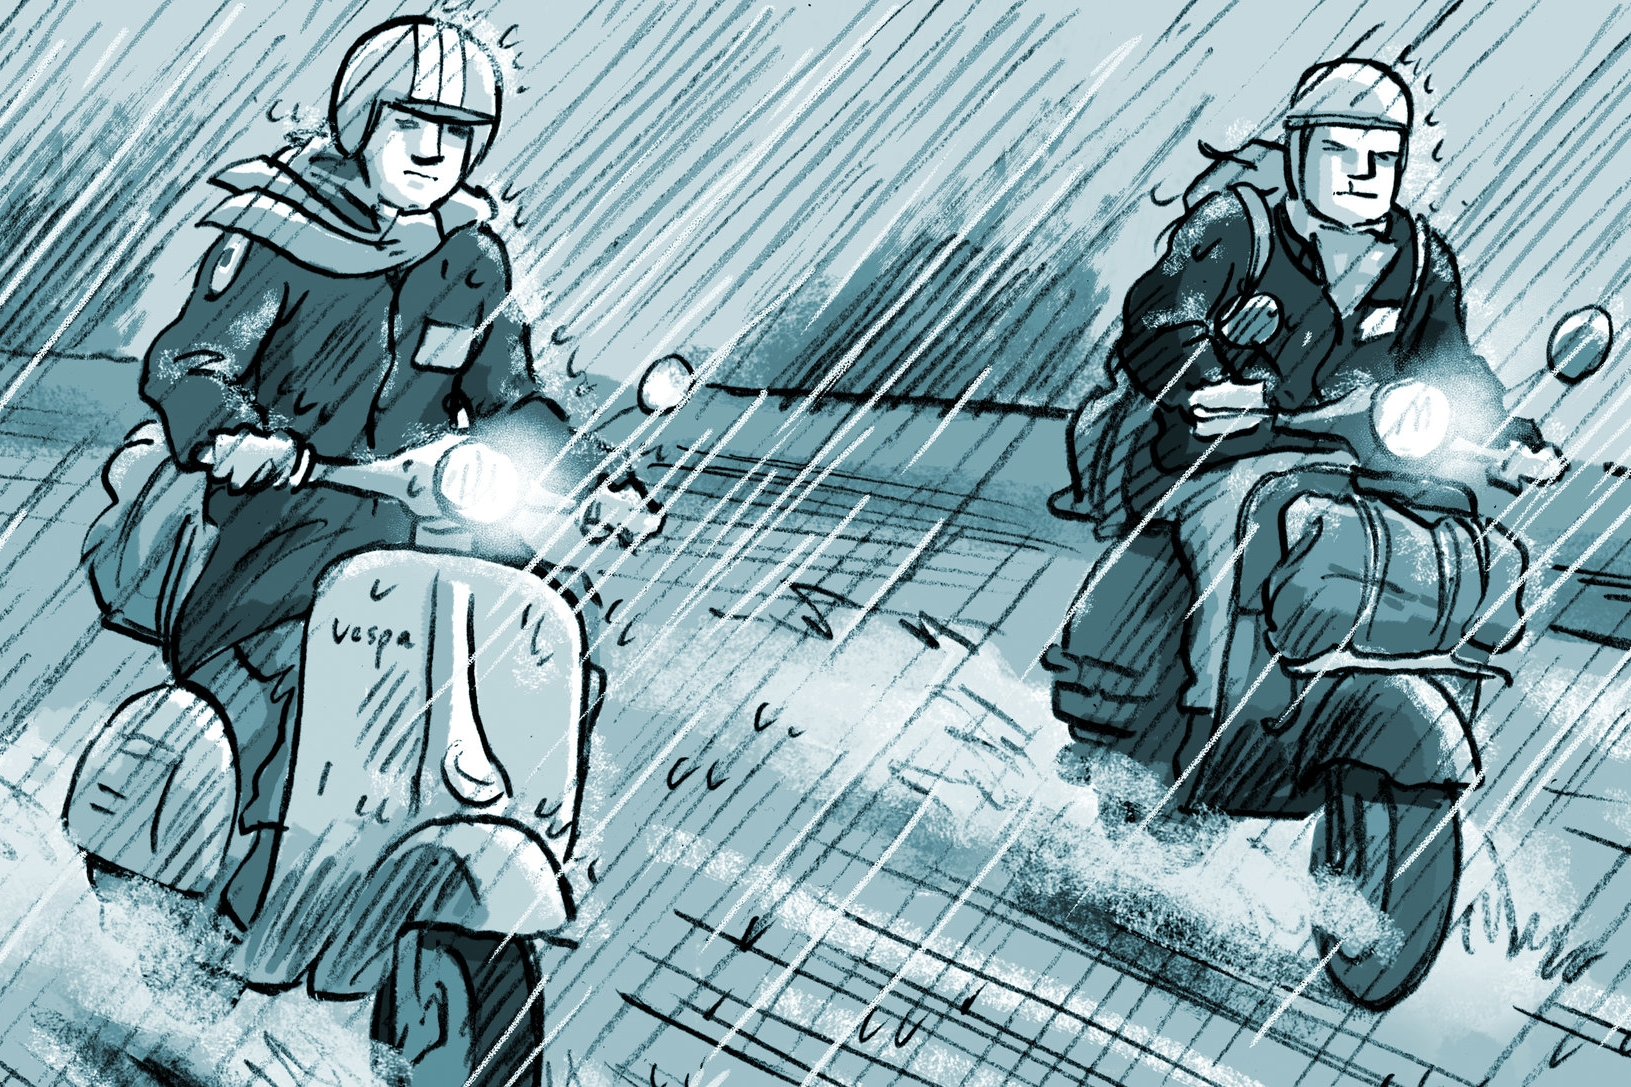 Keep the faith - Excerpt from my graphic novel